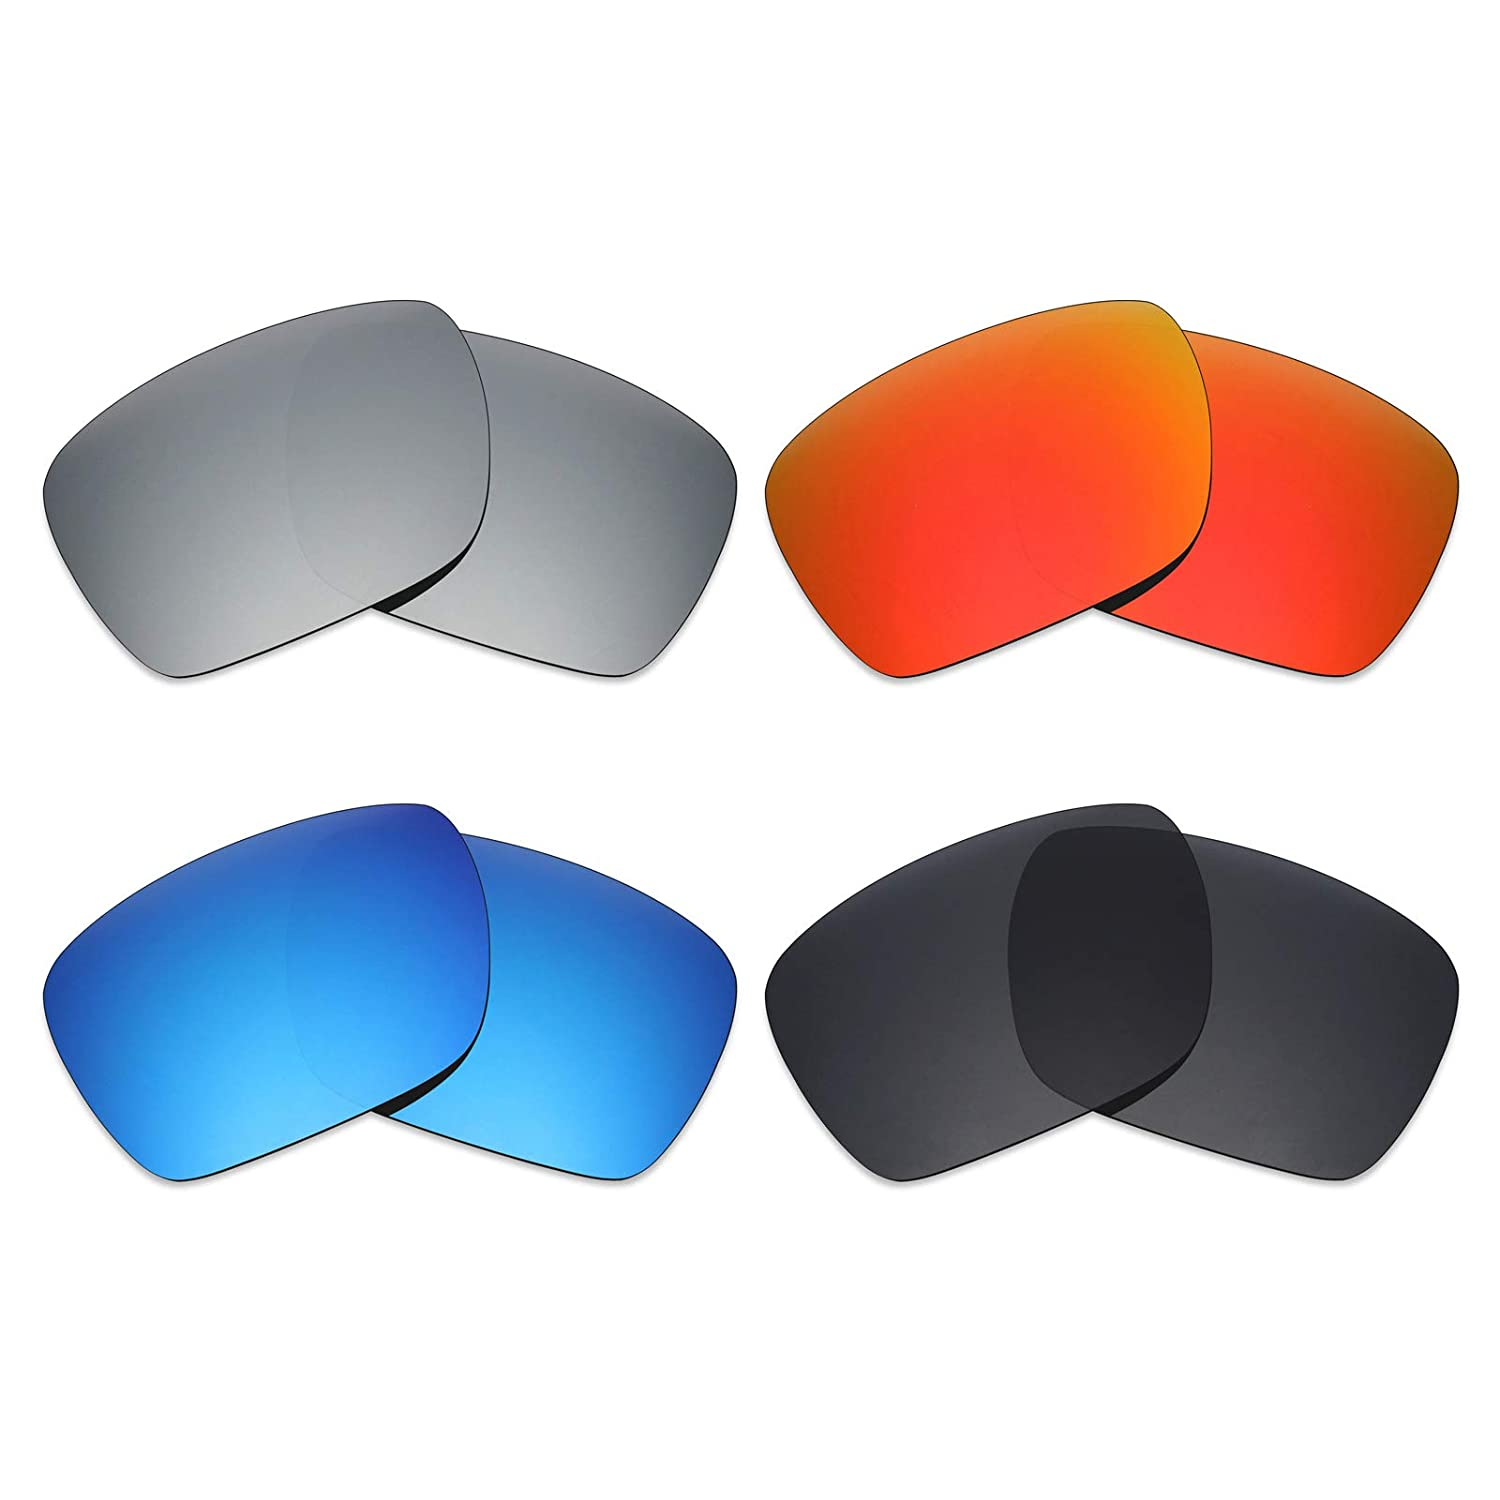 8159ba61e0 Amazon.com   Mryok 4 Pair Polarized Replacement Lenses for Oakley Dispatch  1 Sunglass - Stealth Black Fire Red Ice Blue Silver Titanium   Sports    Outdoors